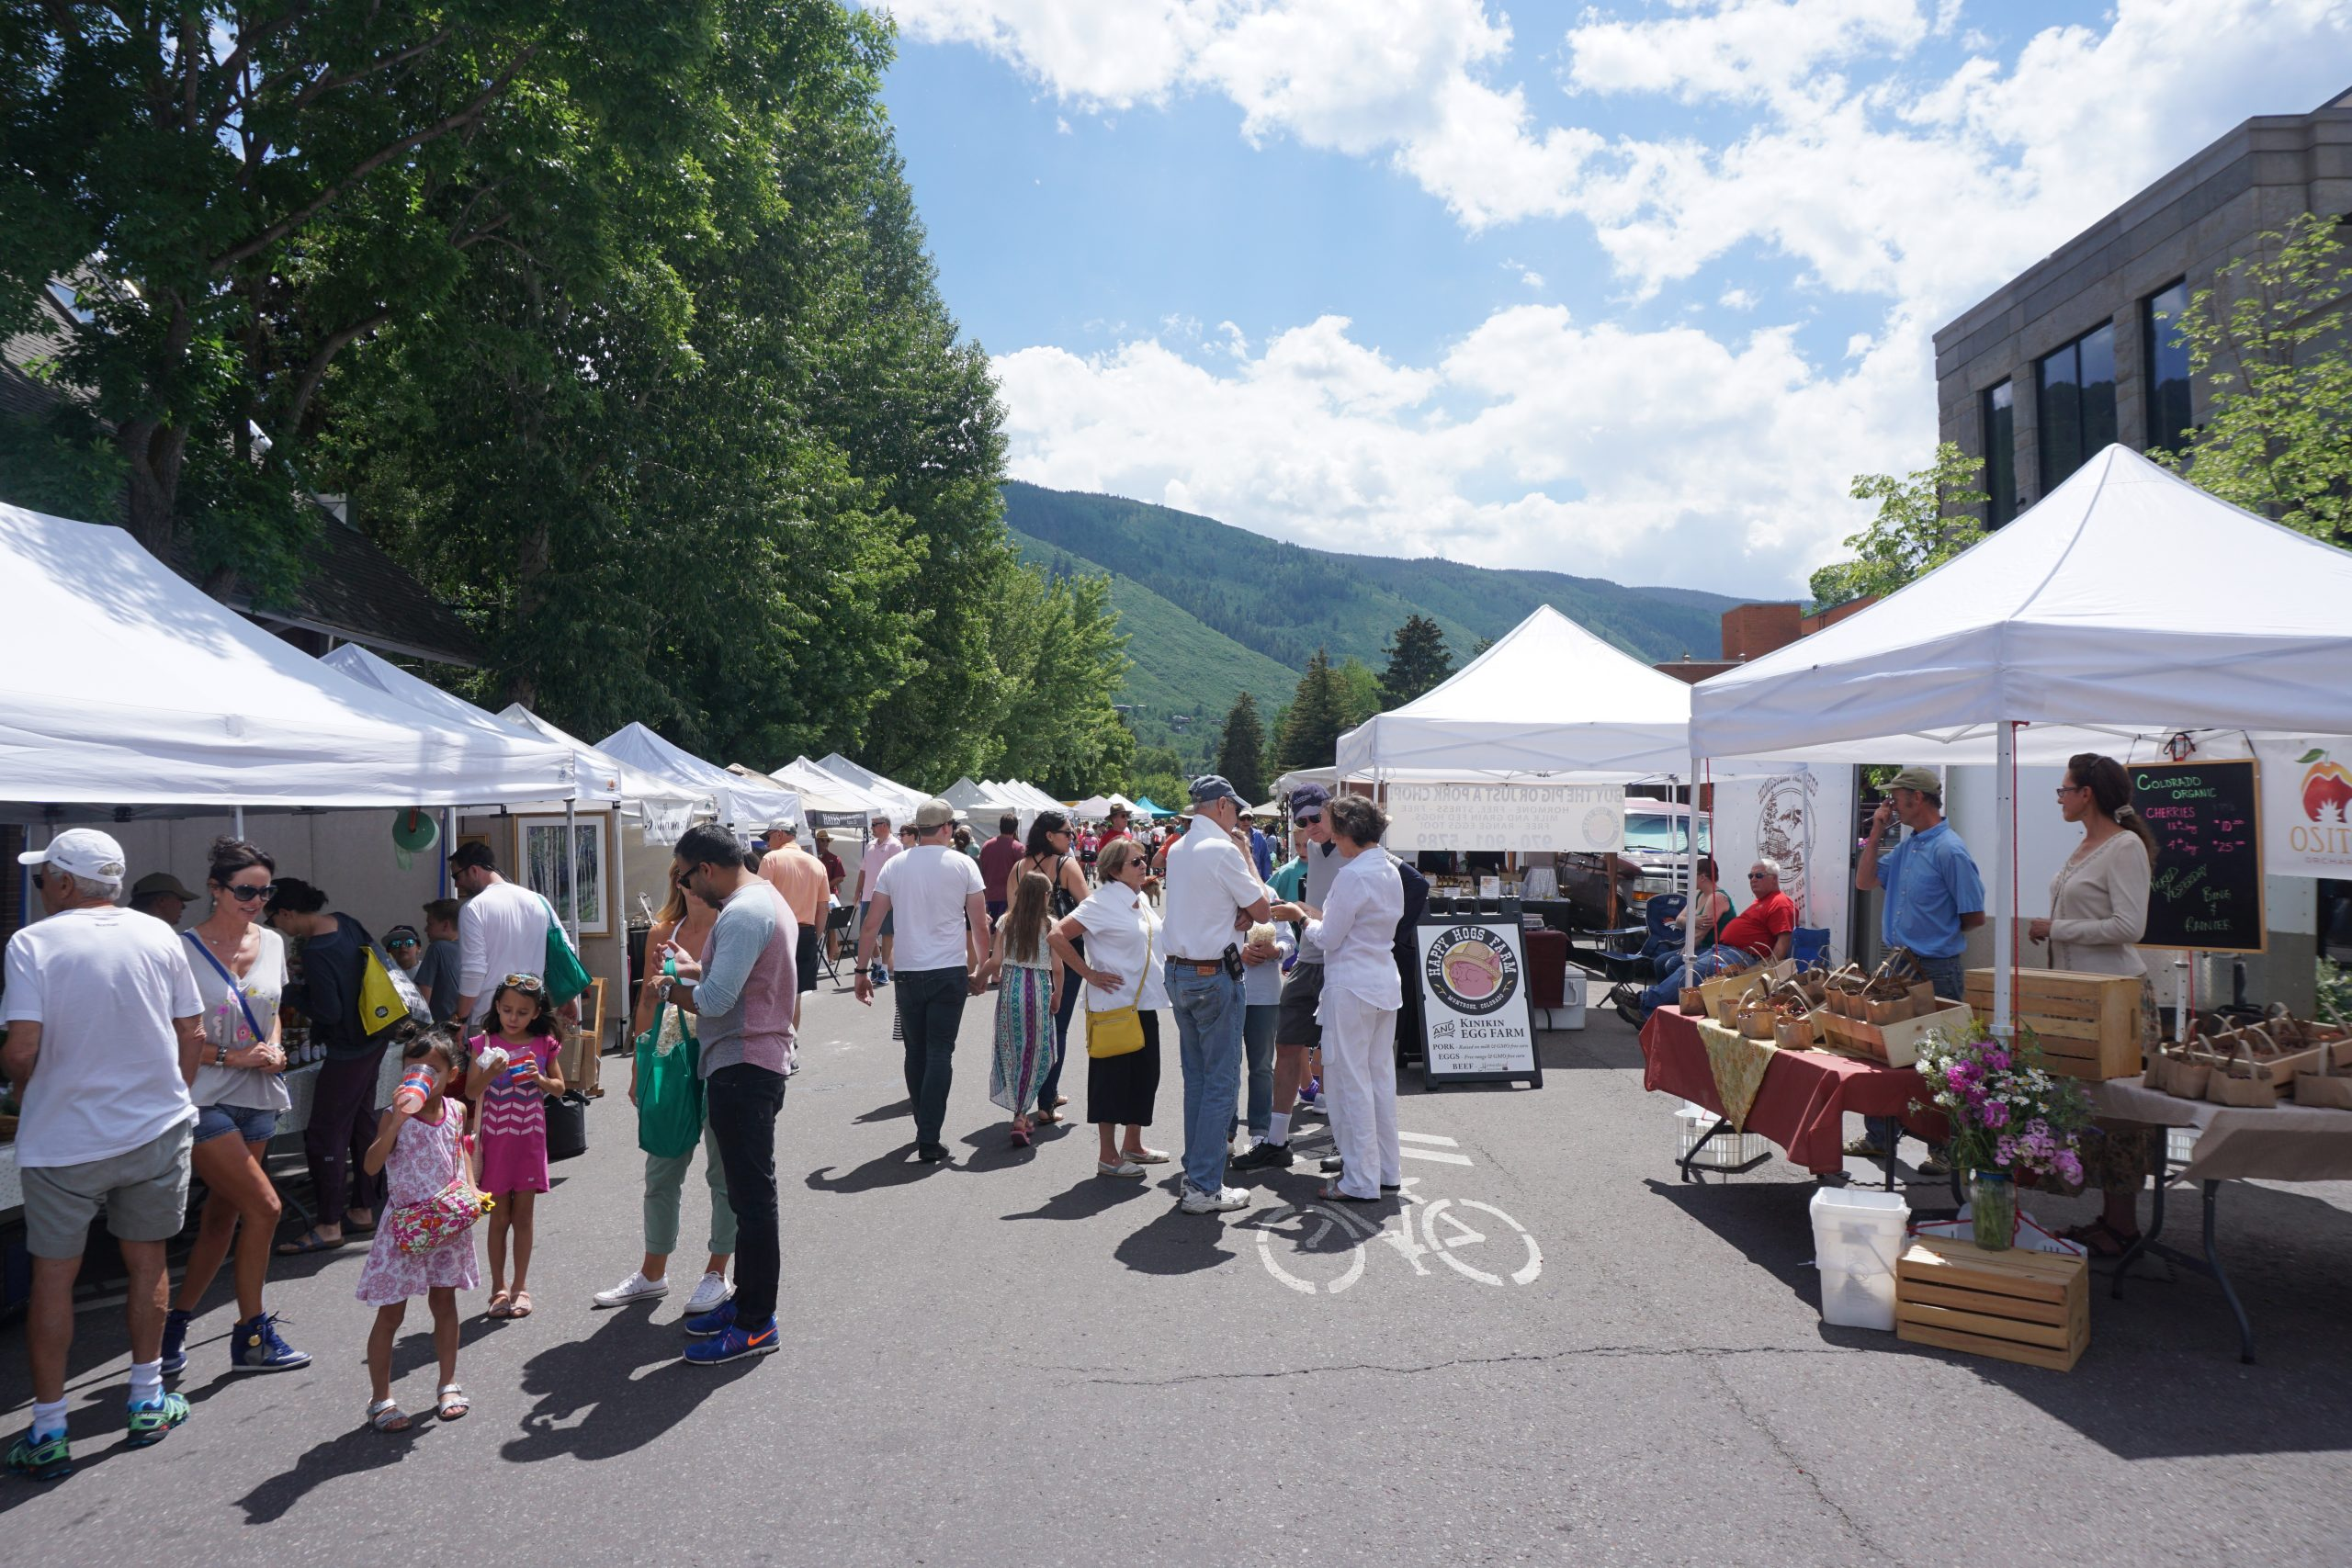 Aspen Colorado Farmers market on a busy Saturday is full of organic foods and homemade product